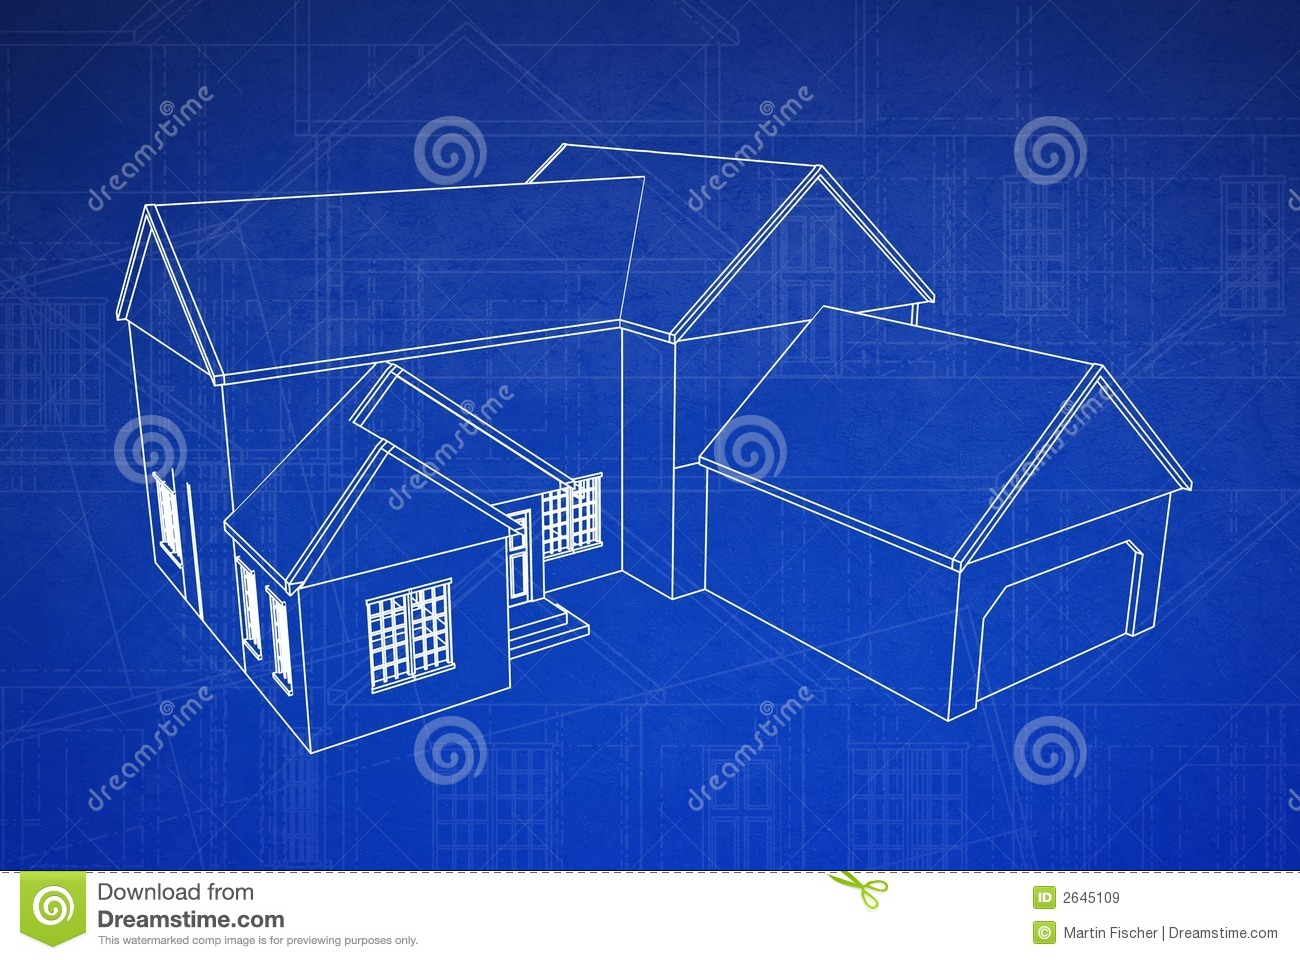 Excellent 3D House Blueprint Royalty Free Stock Images Image 2645109 Largest Home Design Picture Inspirations Pitcheantrous